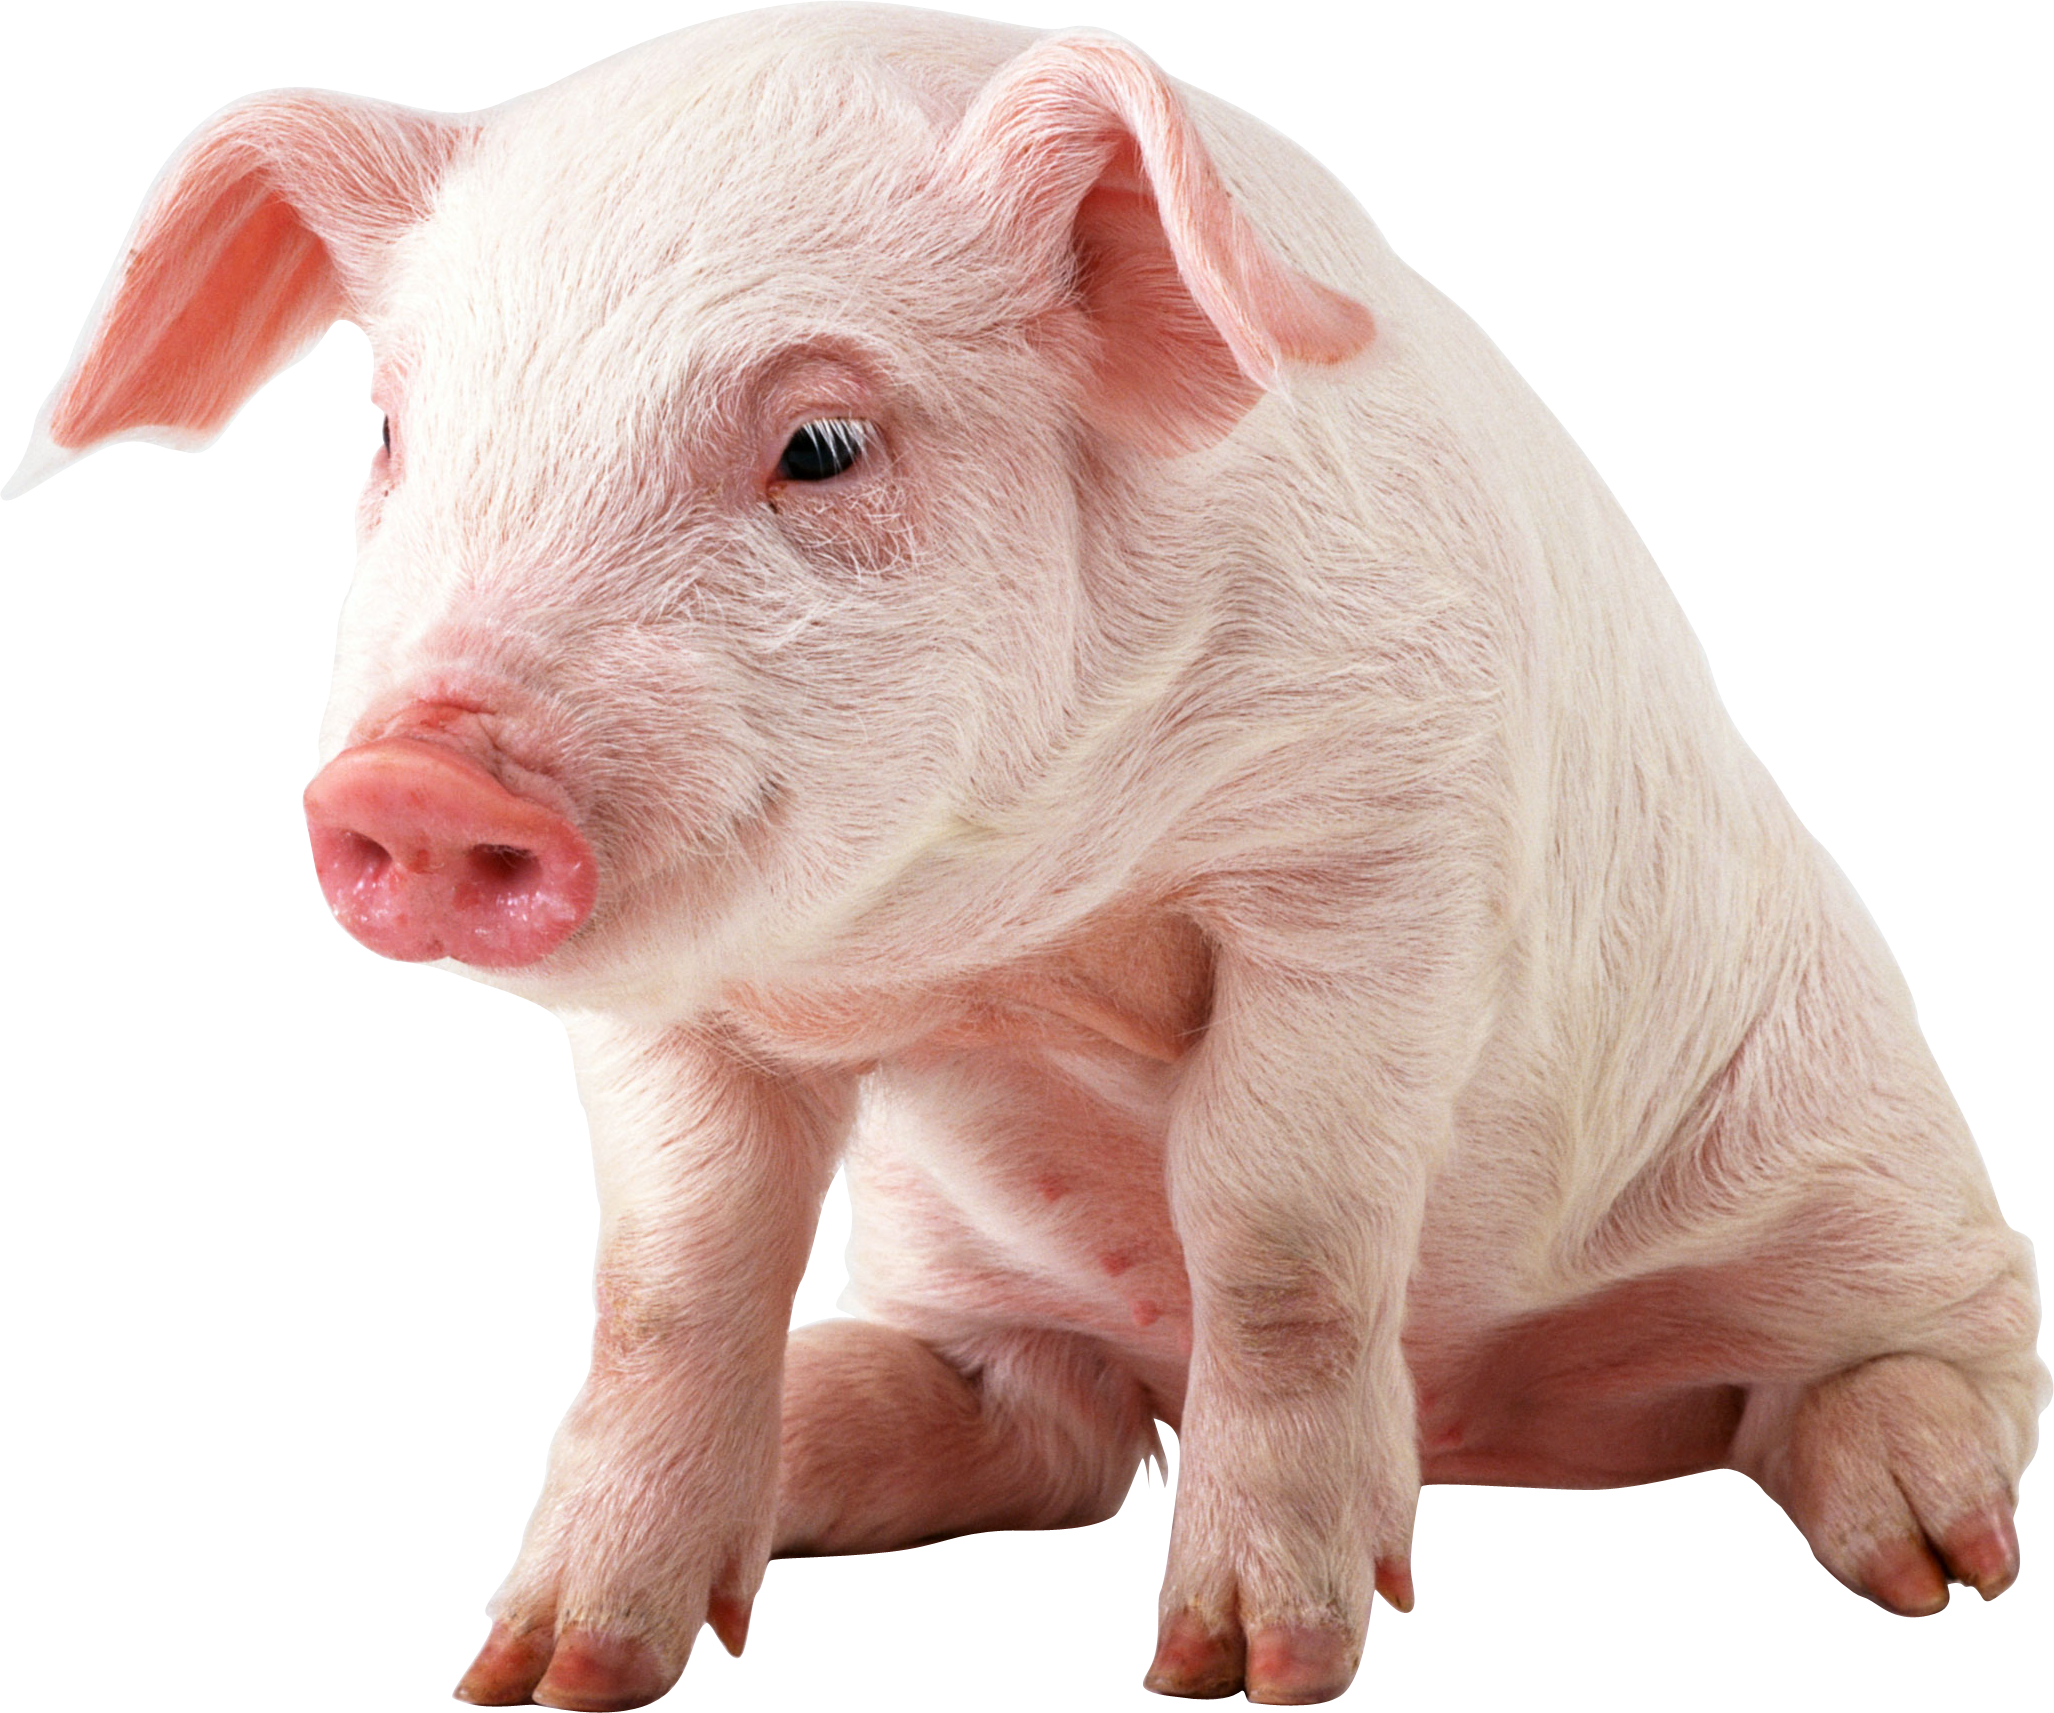 Pig PNG images.